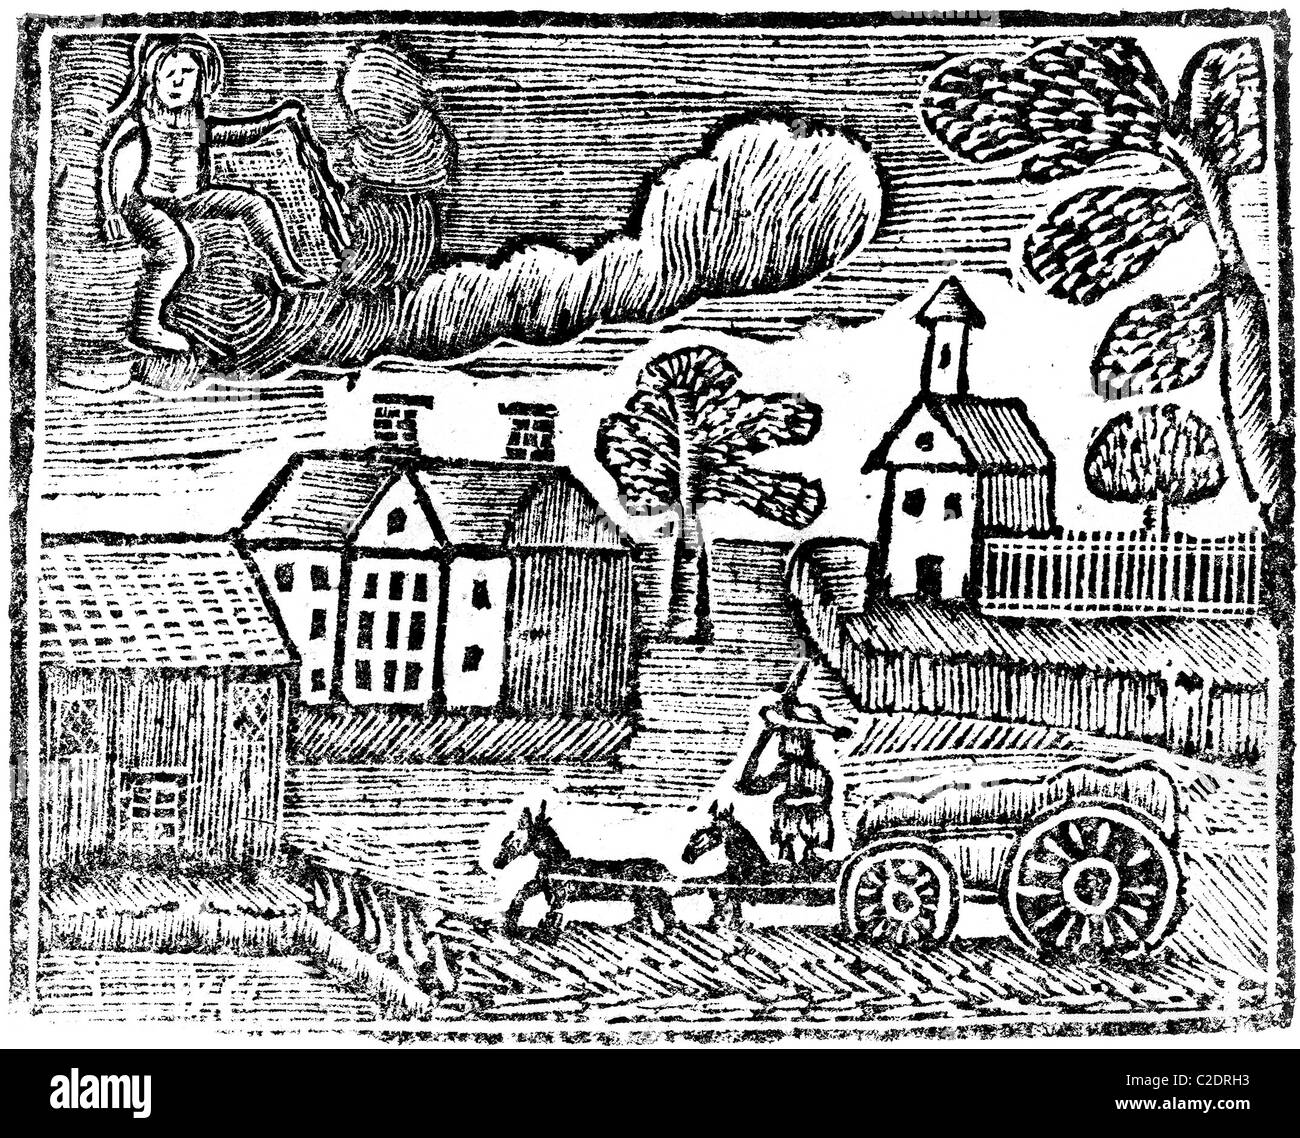 Woodcut from 'A New Guide to the English Tongue' - Stock Image